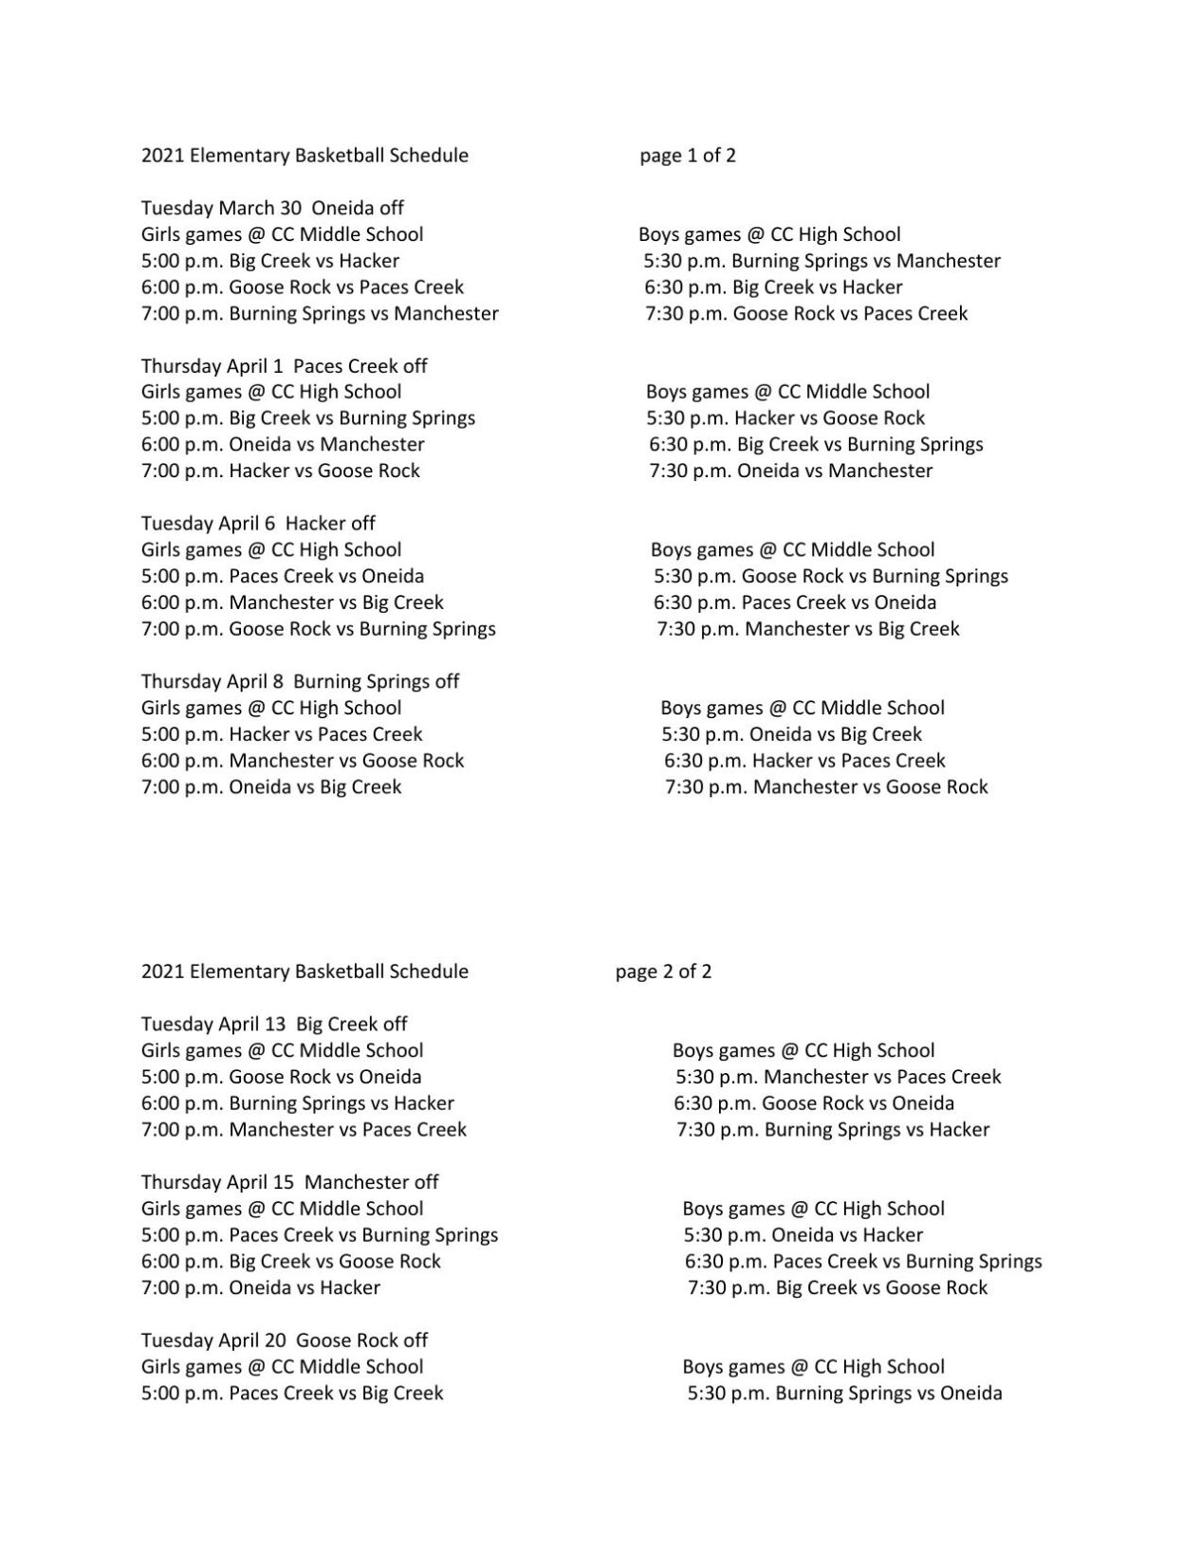 Elementary basketball schedule released